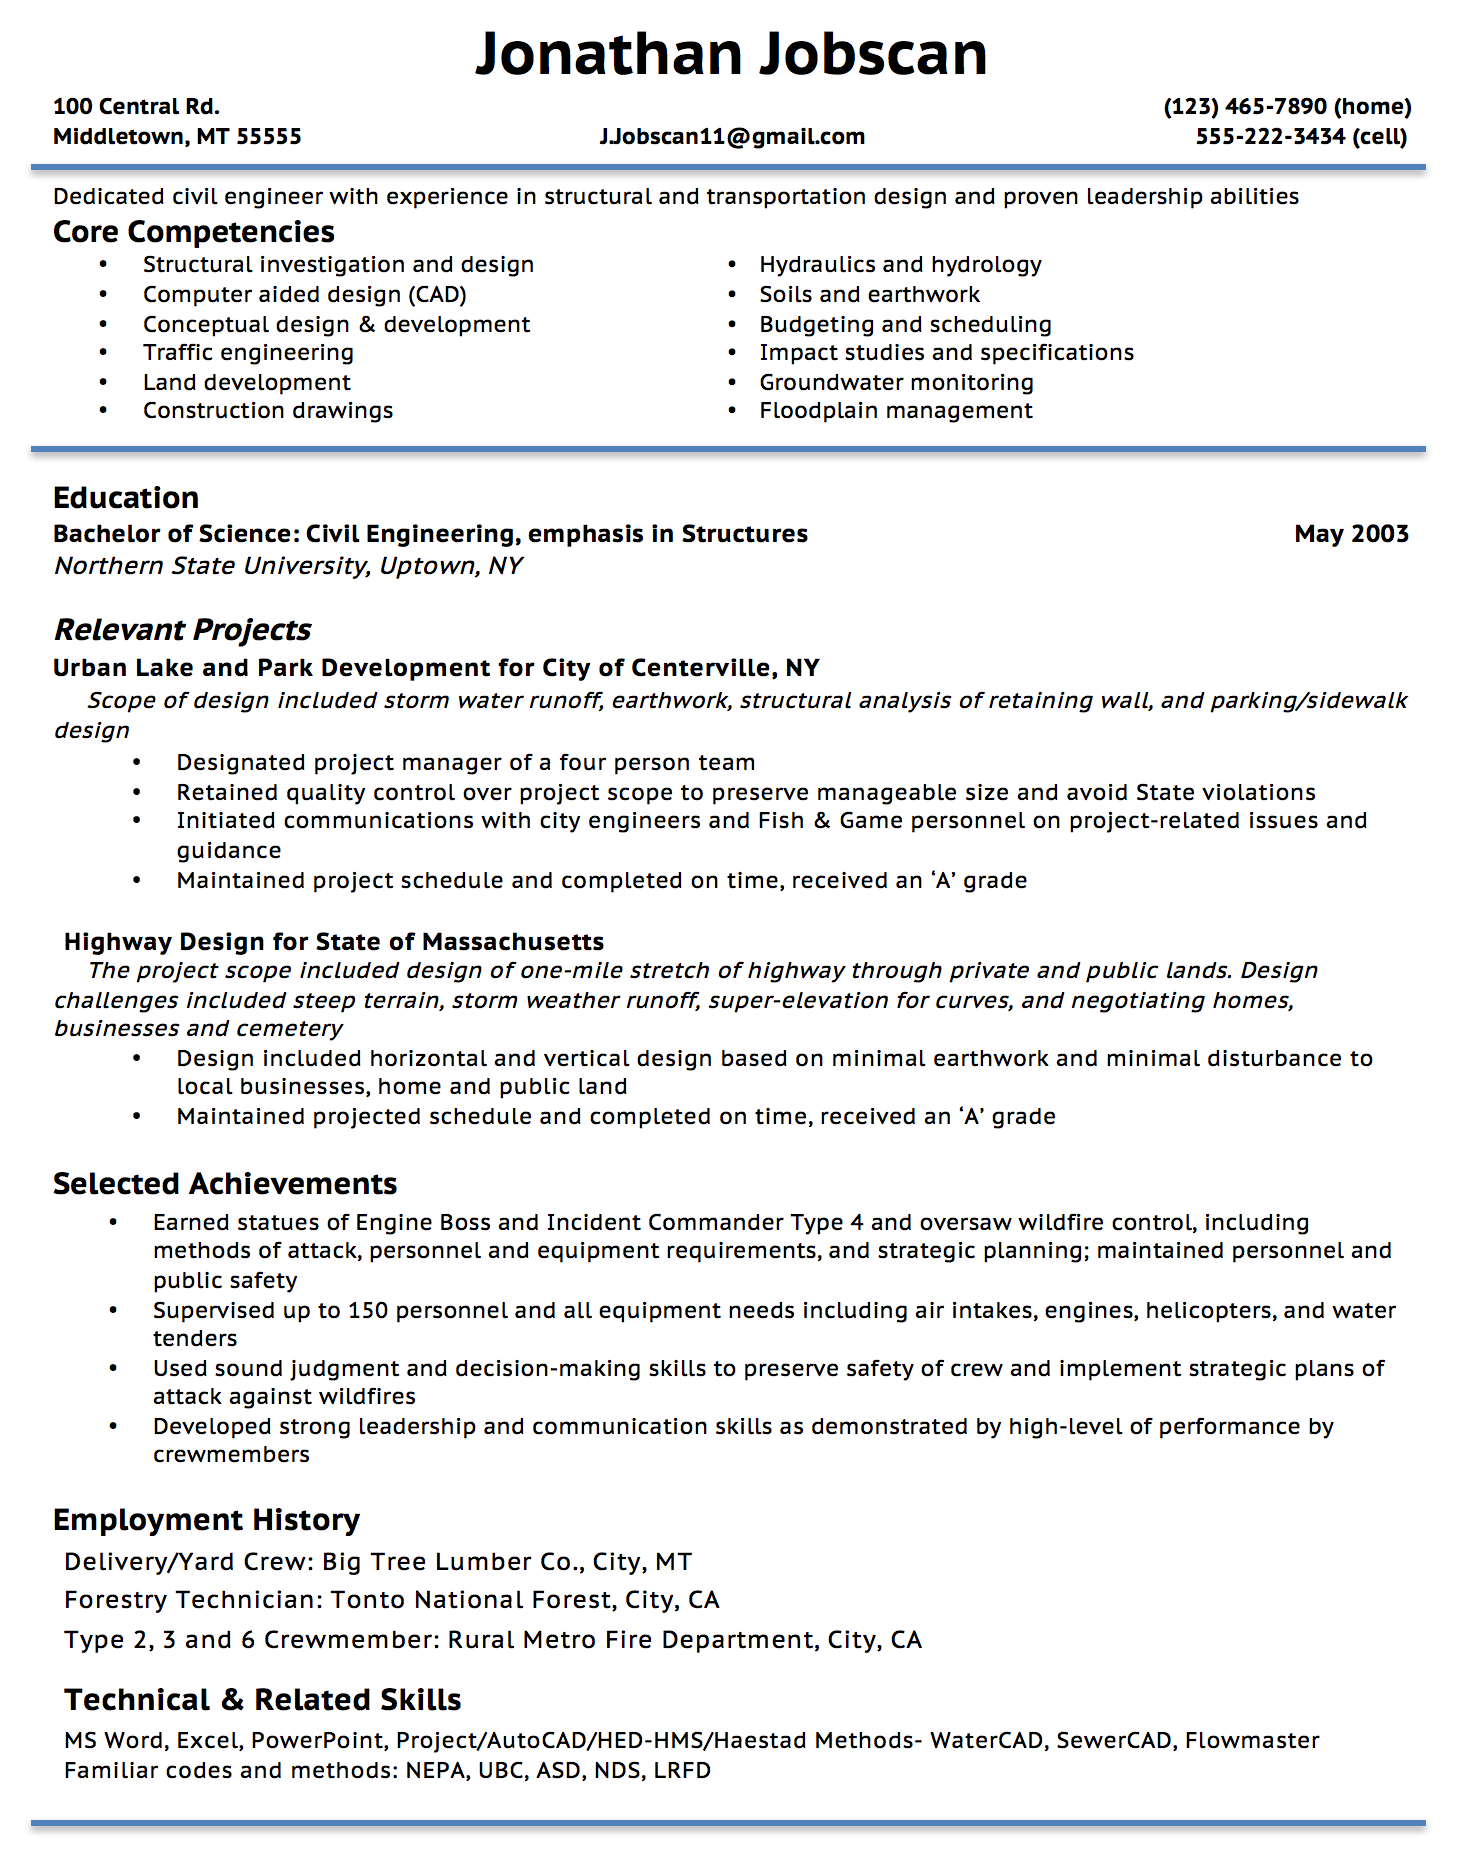 Opposenewapstandardsus  Surprising Resume Writing Guide  Jobscan With Hot Example Of A Functional Resume Format With Beautiful Server Bartender Resume Also Medical Device Sales Resume In Addition College Admissions Resume And Personal Statement On Resume As Well As Auto Technician Resume Additionally Resume Template For Students From Jobscanco With Opposenewapstandardsus  Hot Resume Writing Guide  Jobscan With Beautiful Example Of A Functional Resume Format And Surprising Server Bartender Resume Also Medical Device Sales Resume In Addition College Admissions Resume From Jobscanco